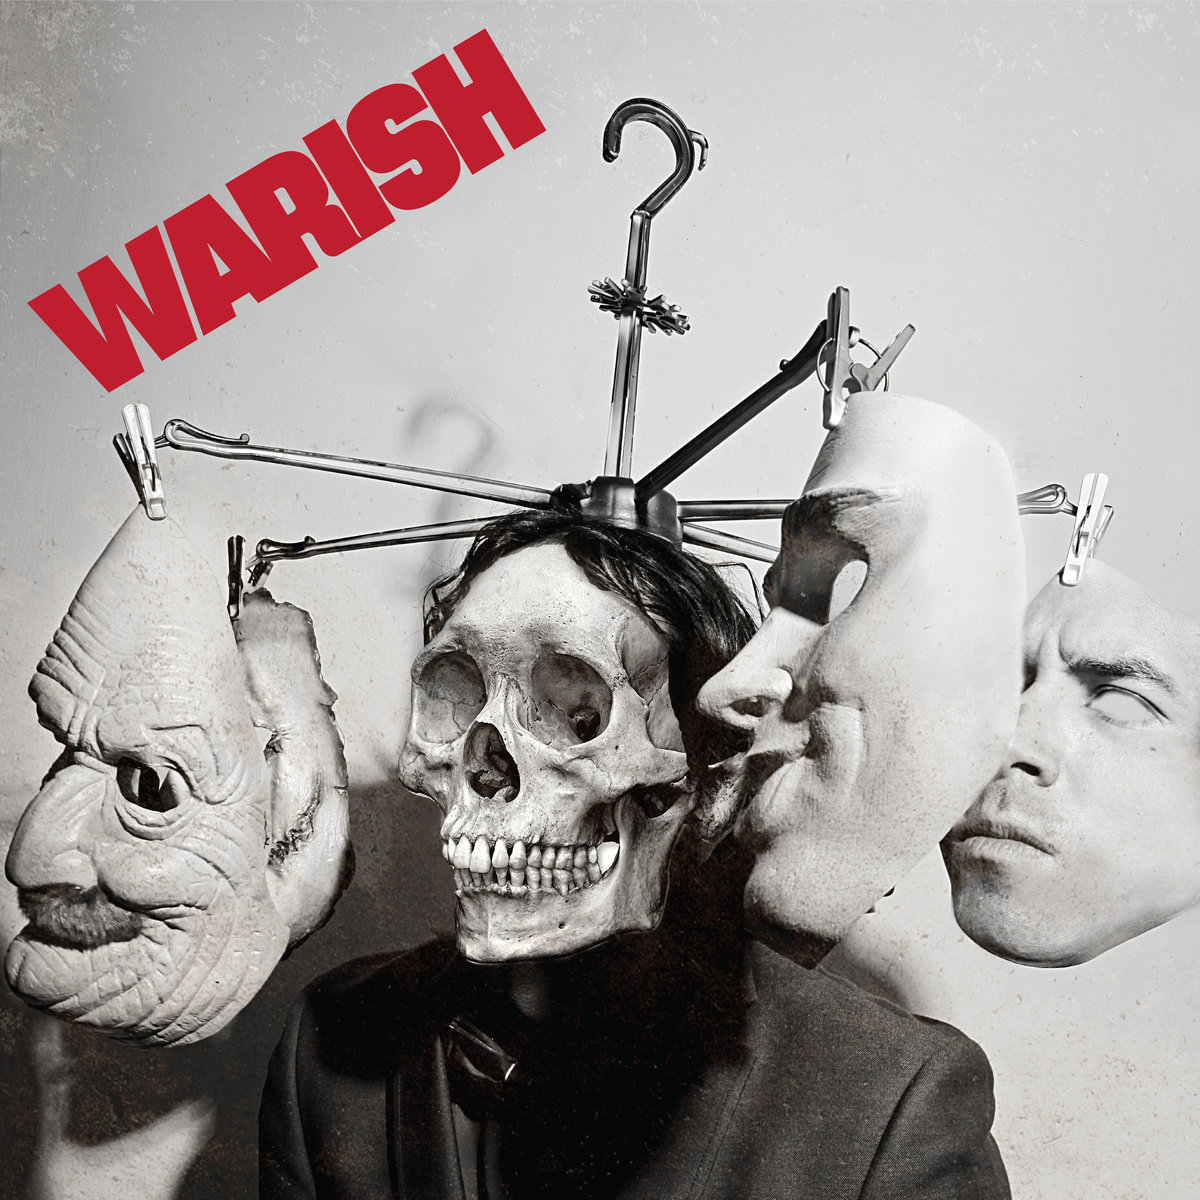 Did you know Tony Hawk's son Riley is in a punk band called Warish?